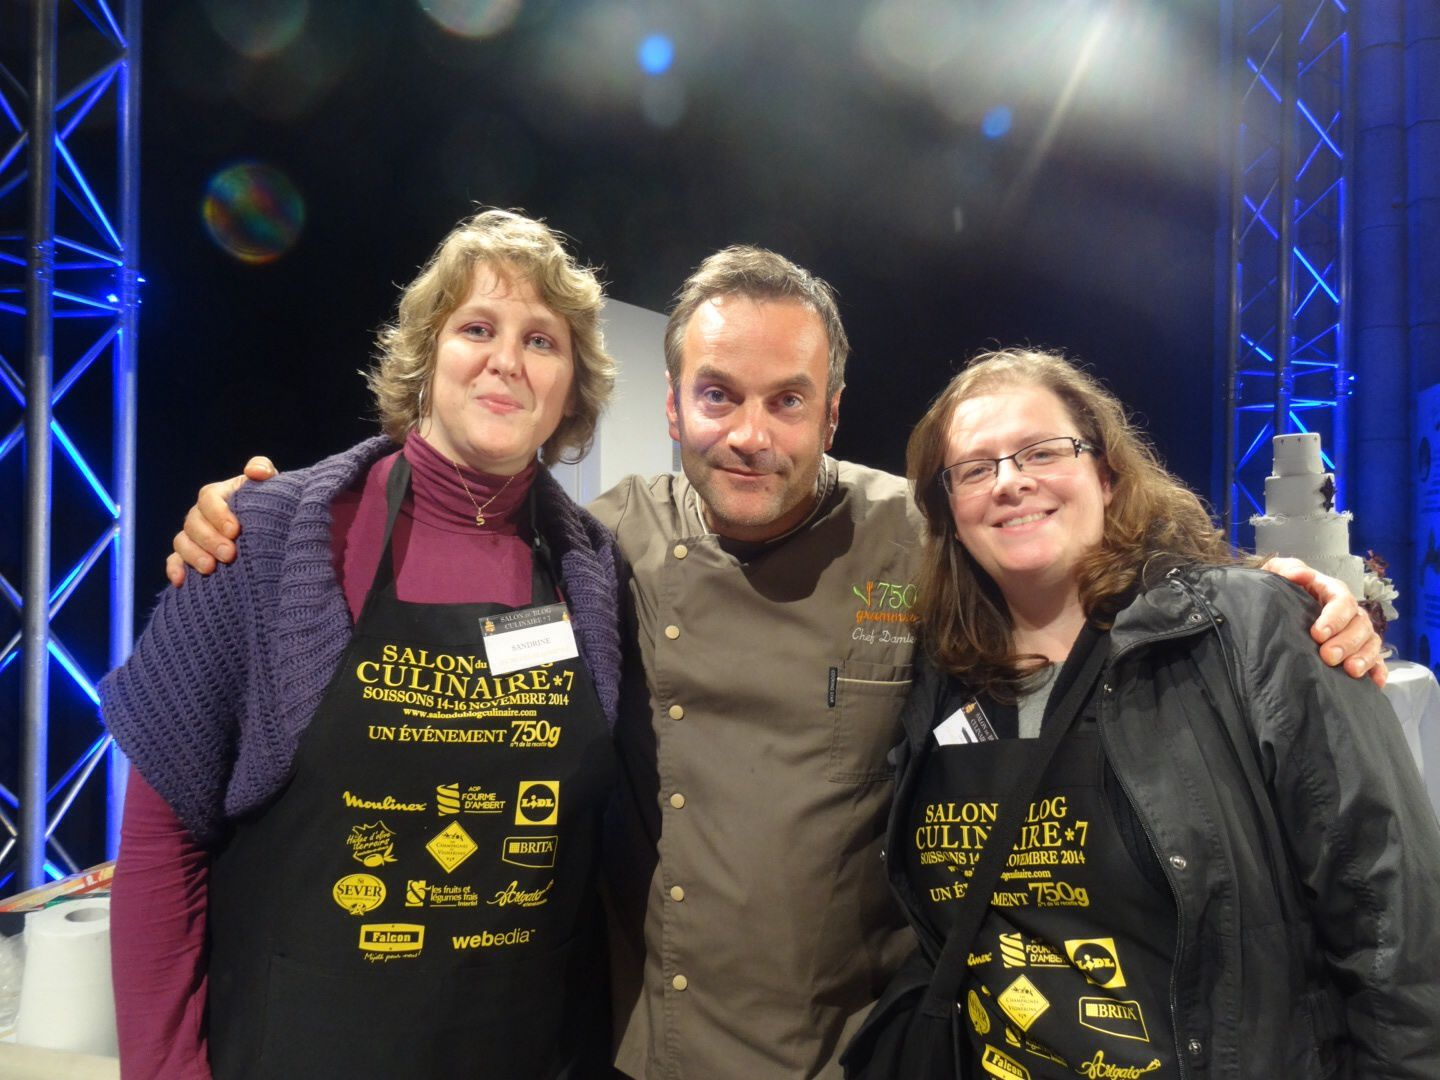 UN WEEK-END AU Salon du Blog Culinaire 7 SOISSONS (2 ème Partie)